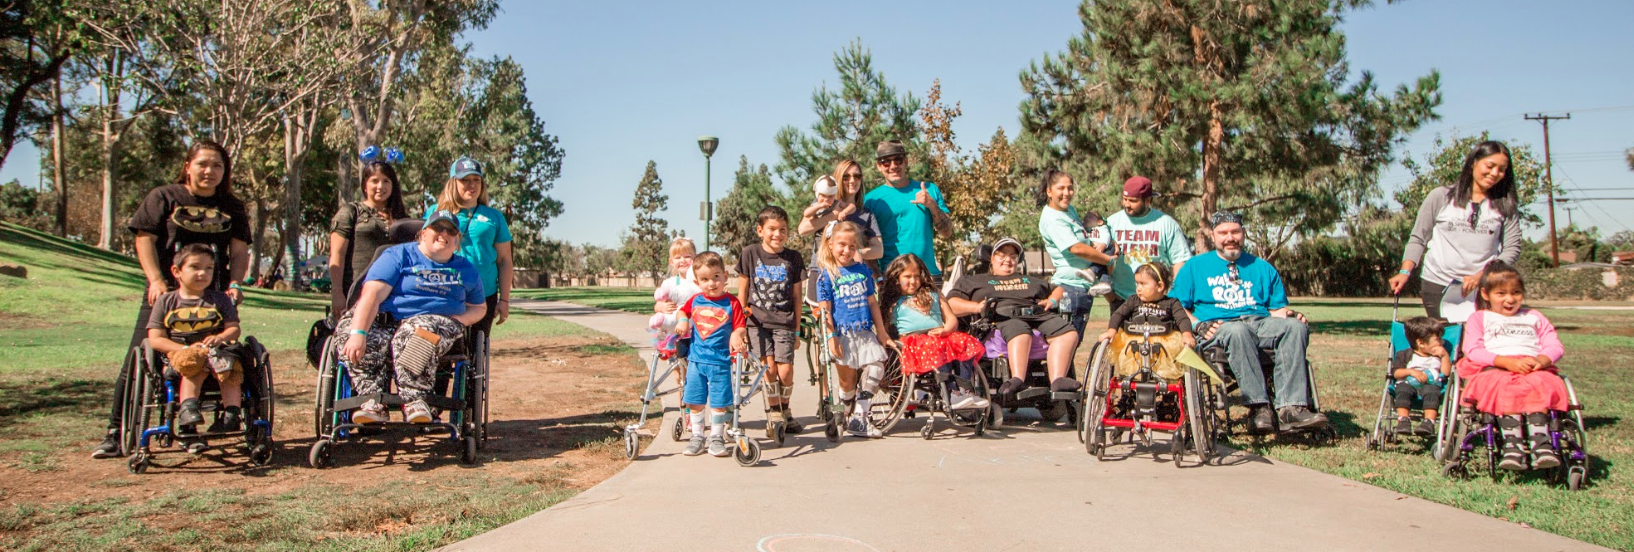 Group of diverse people with Spina Bifida